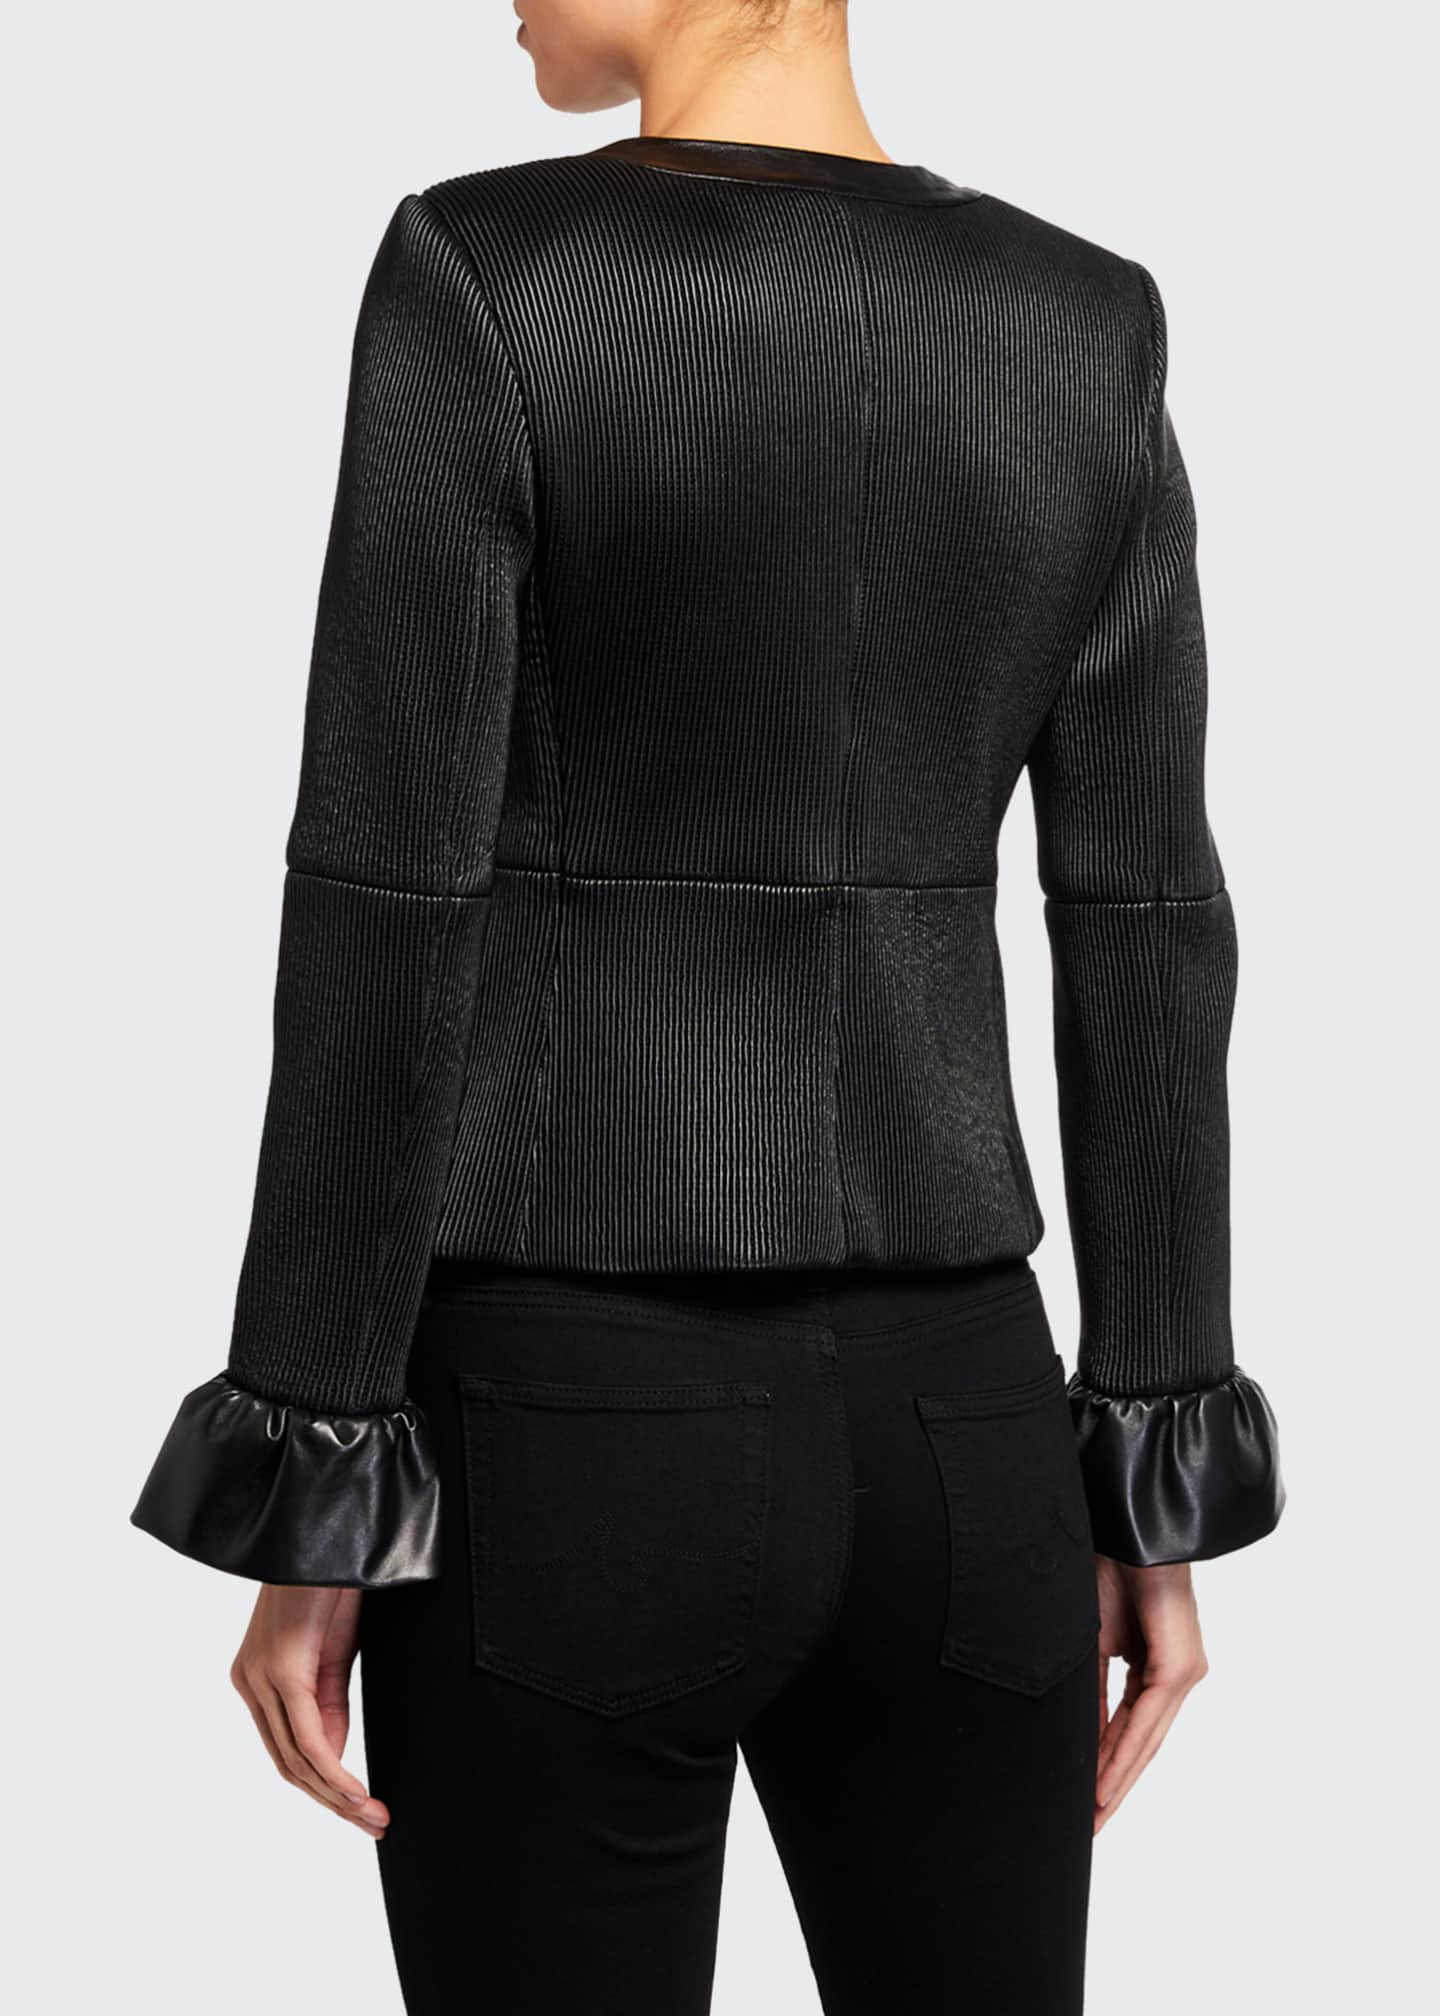 Image 3 of 3: Jonie Leather Jacket w/ Ruffled Cuffs